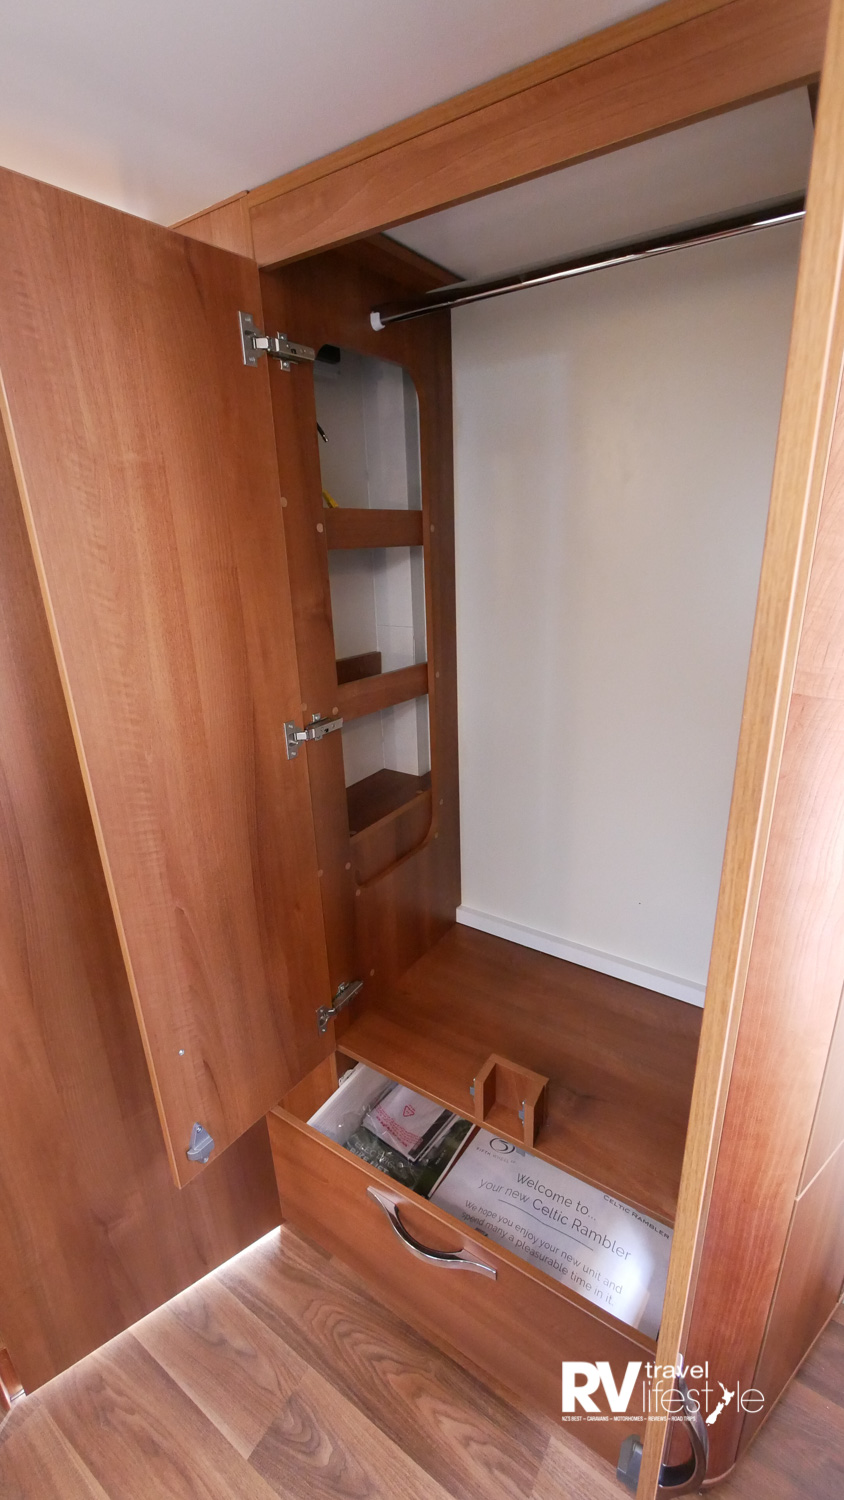 So much storage in this full-height wardrobe, as well as a drawer under the bed and the cupboards behind the bed head